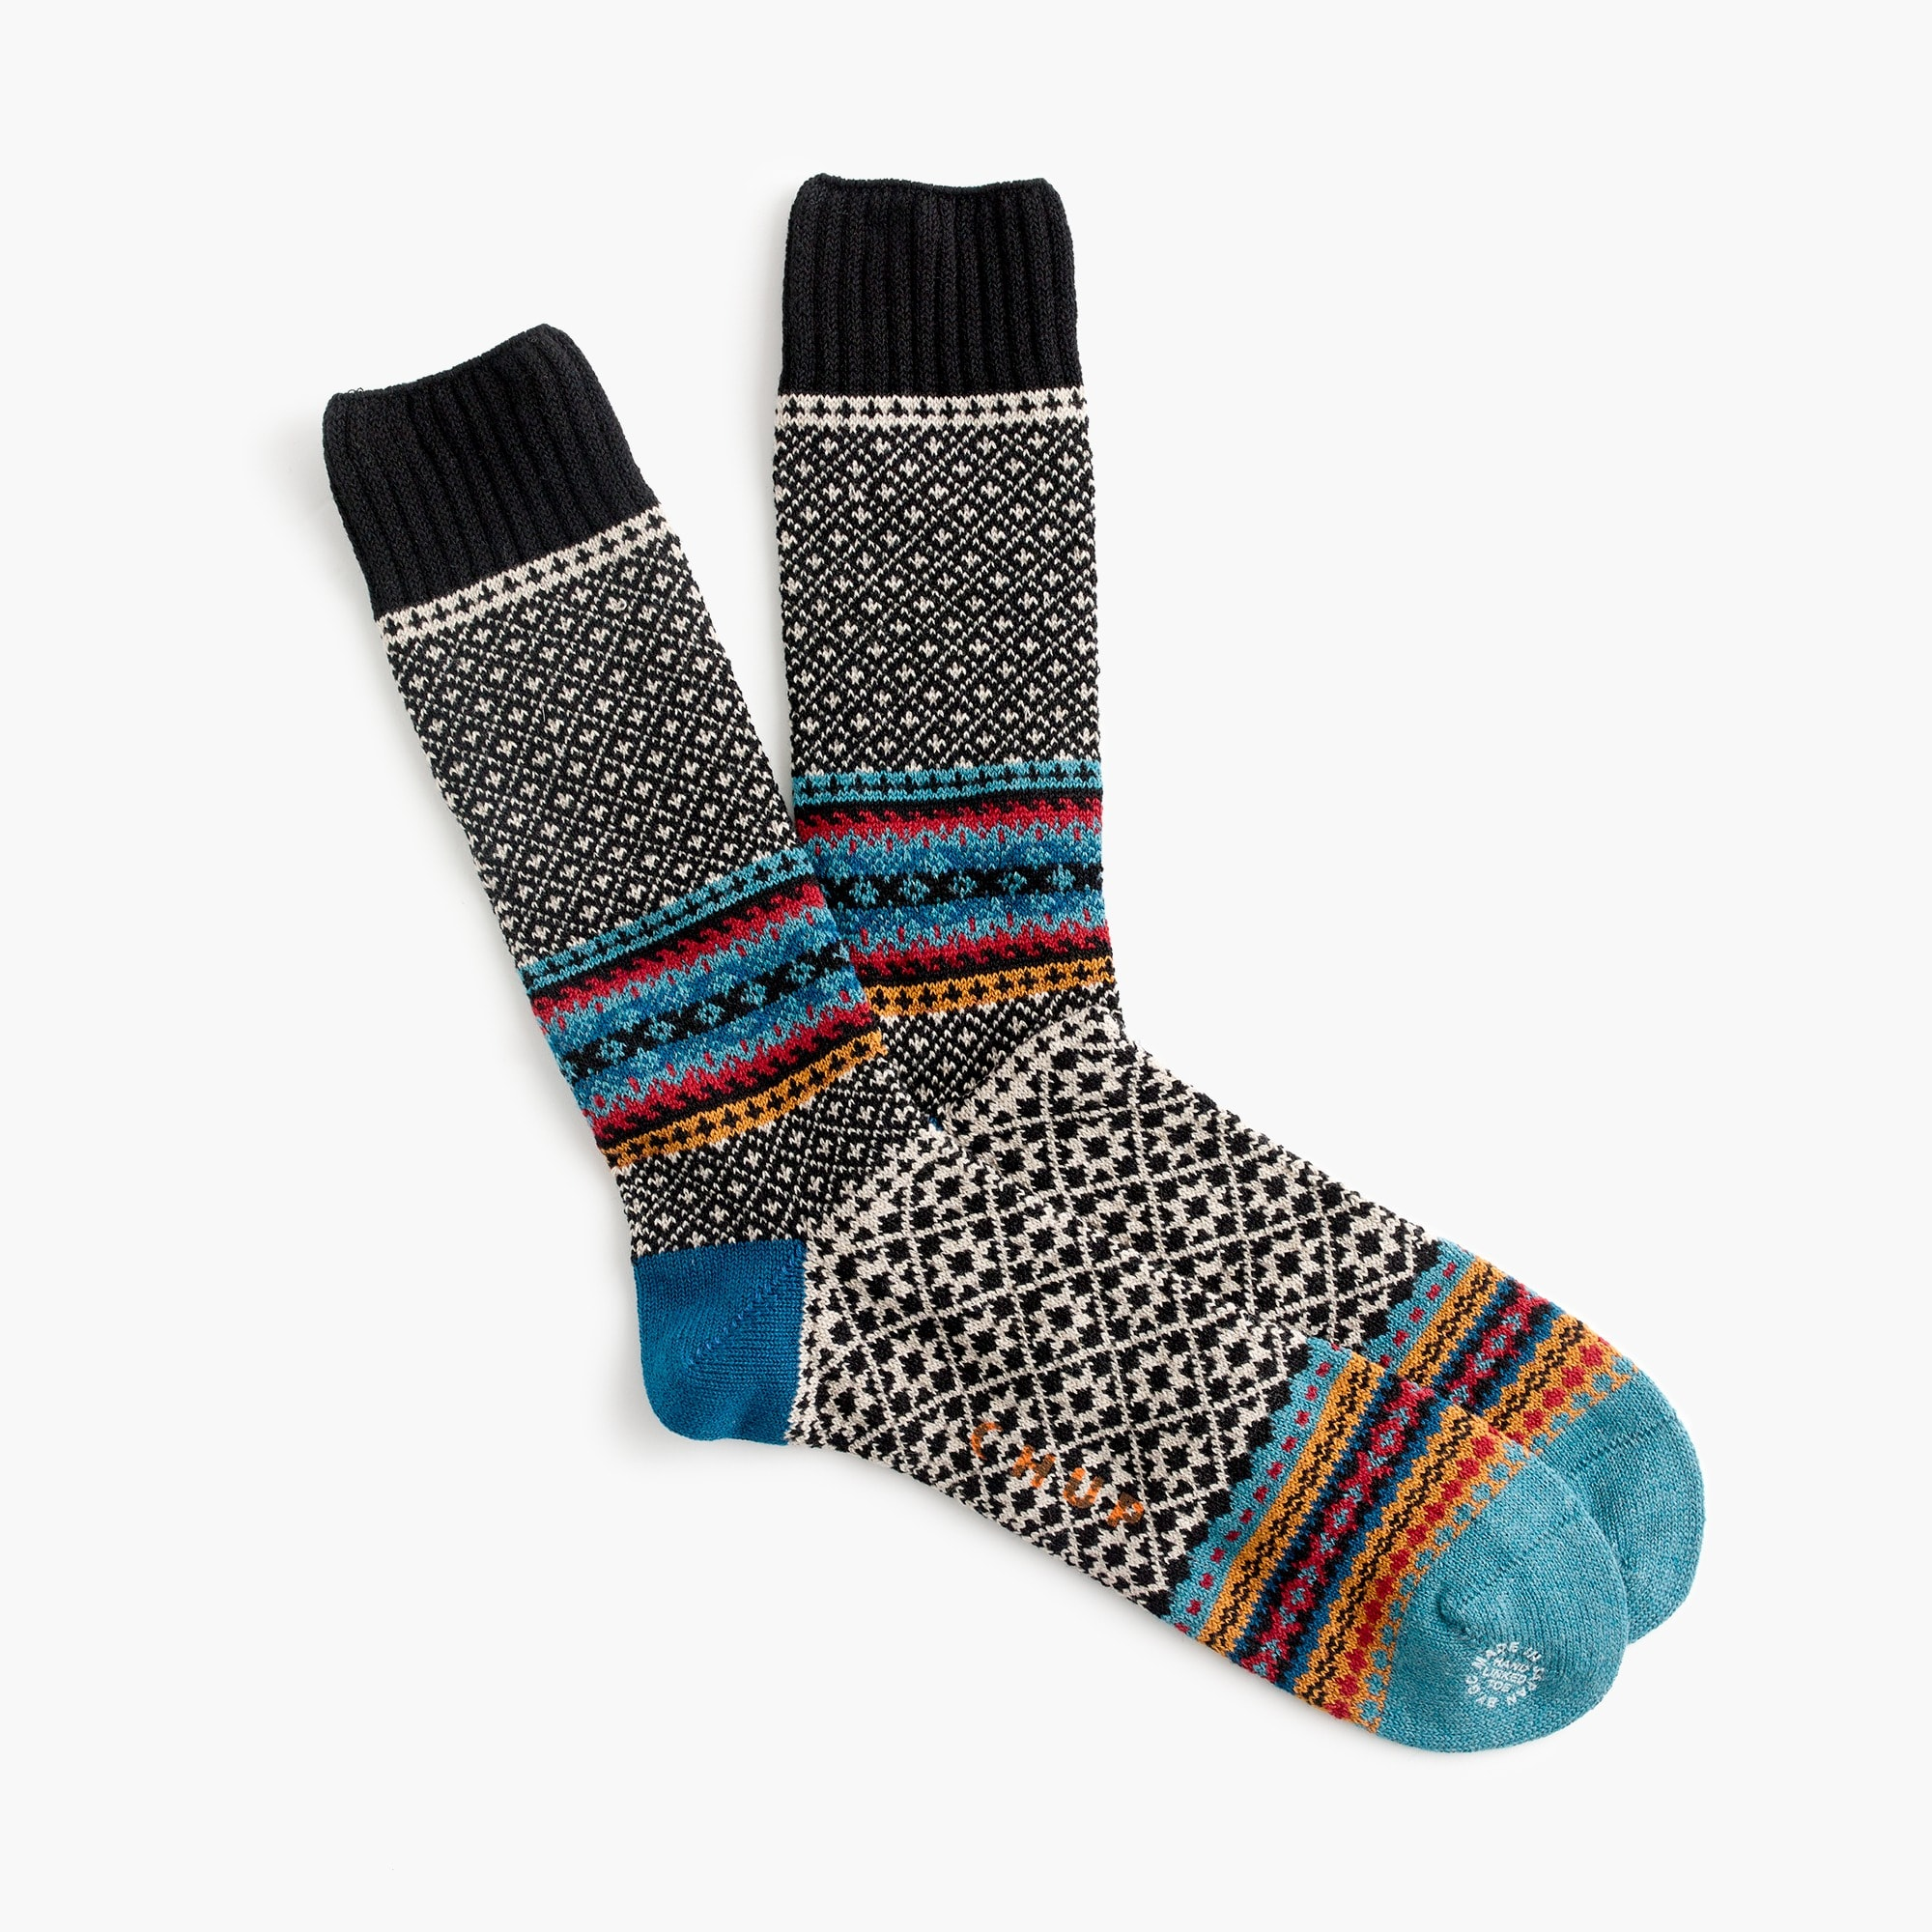 Chup™ multi-pattern socks men j.crew in good company c